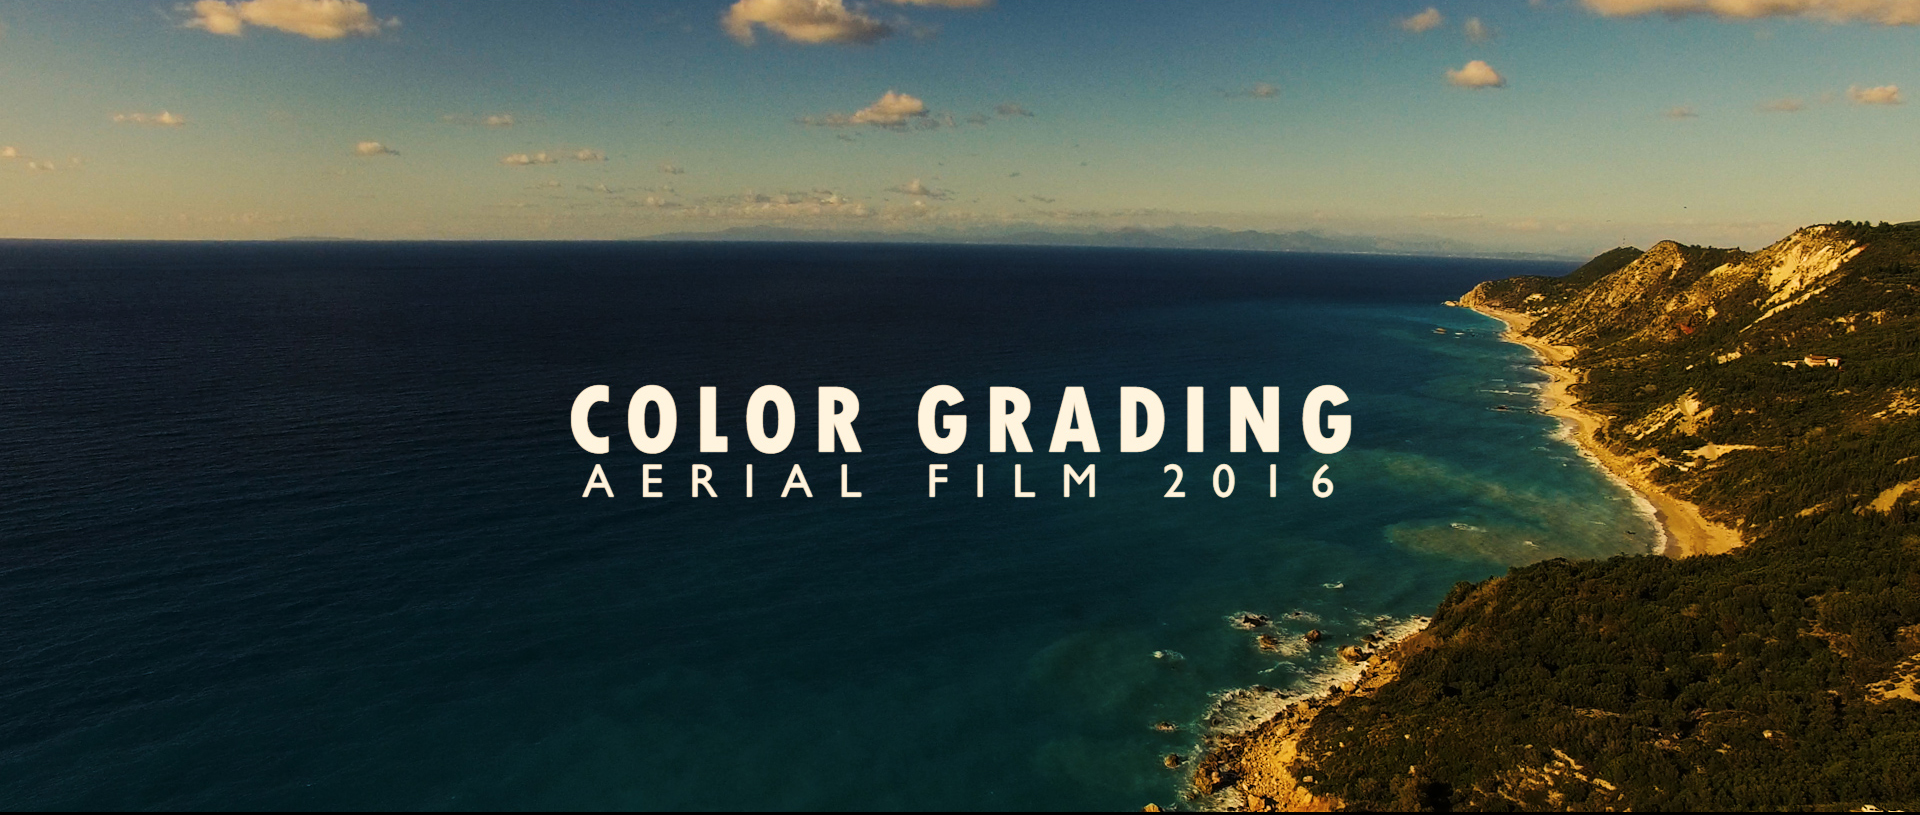 Color Grading by Cristi Coman